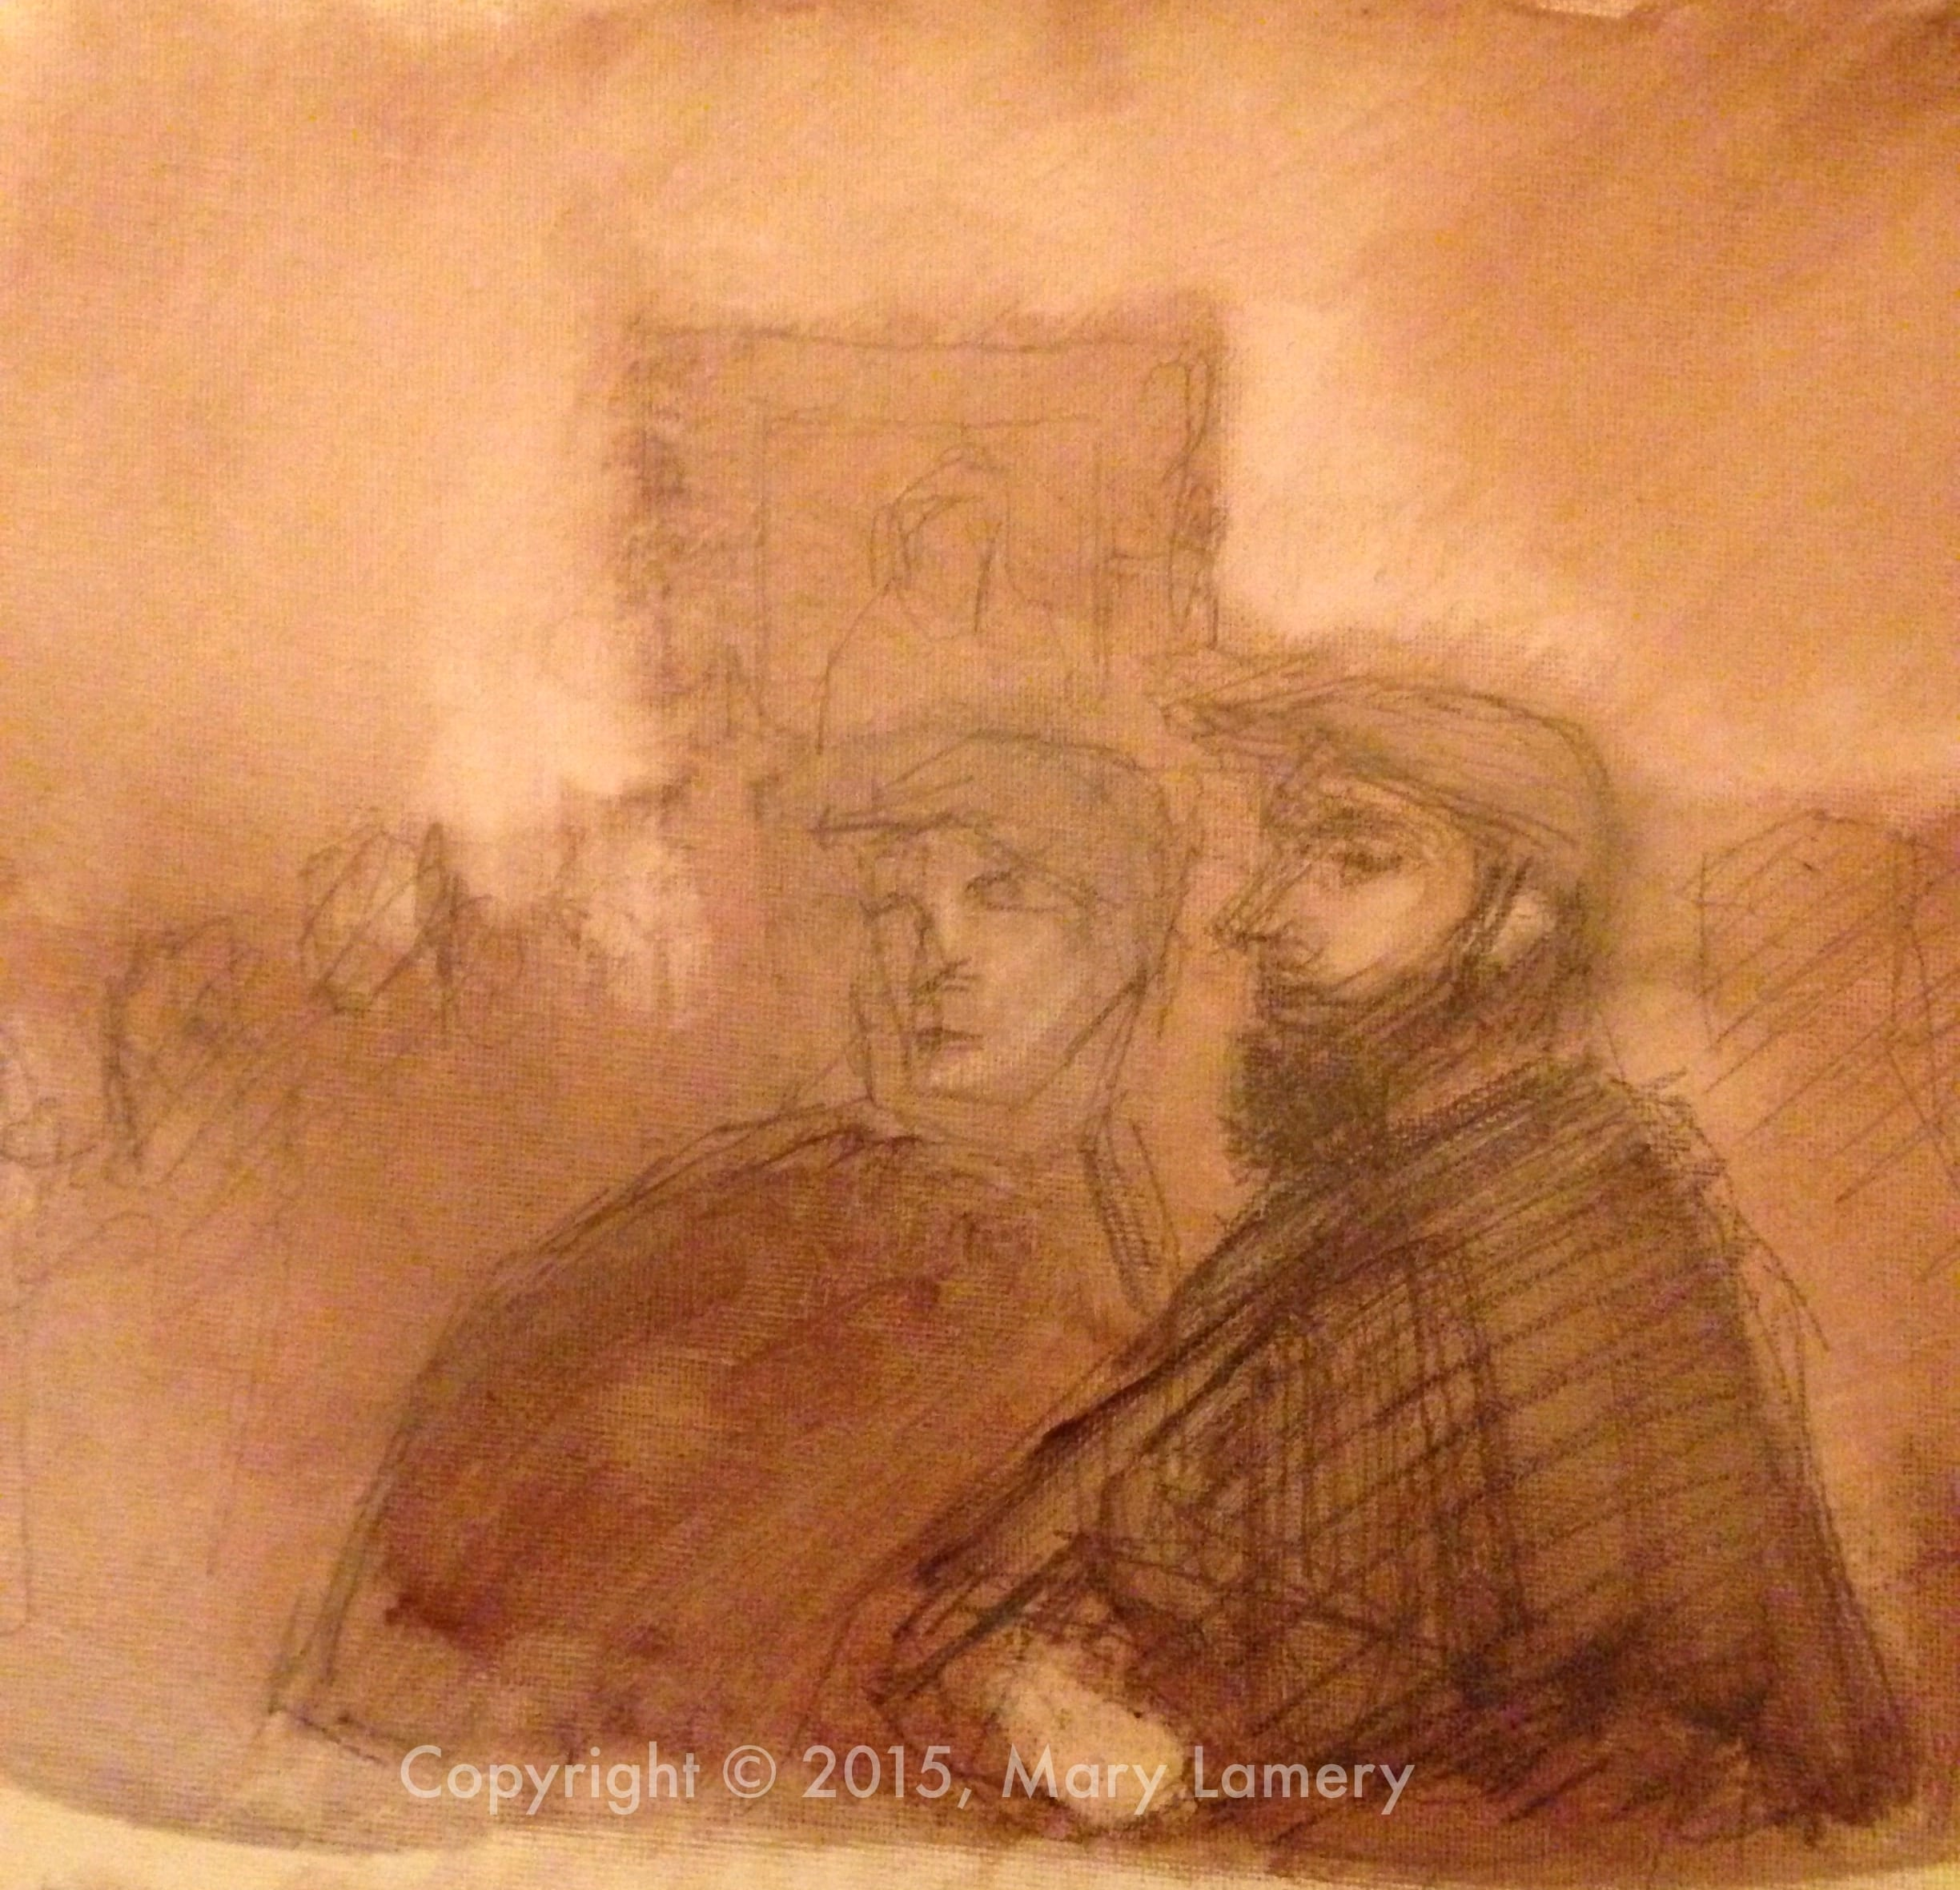 "I saw a gentleman (on the right) in the Impressionist galleries at SAM that reminded me of a French Impressionist painter.  He reminded   me in real life of the Manet painting above.  I painted this quick oil sketch from drawings I made. Oil on canvas paper. 8.5x11"". ML."